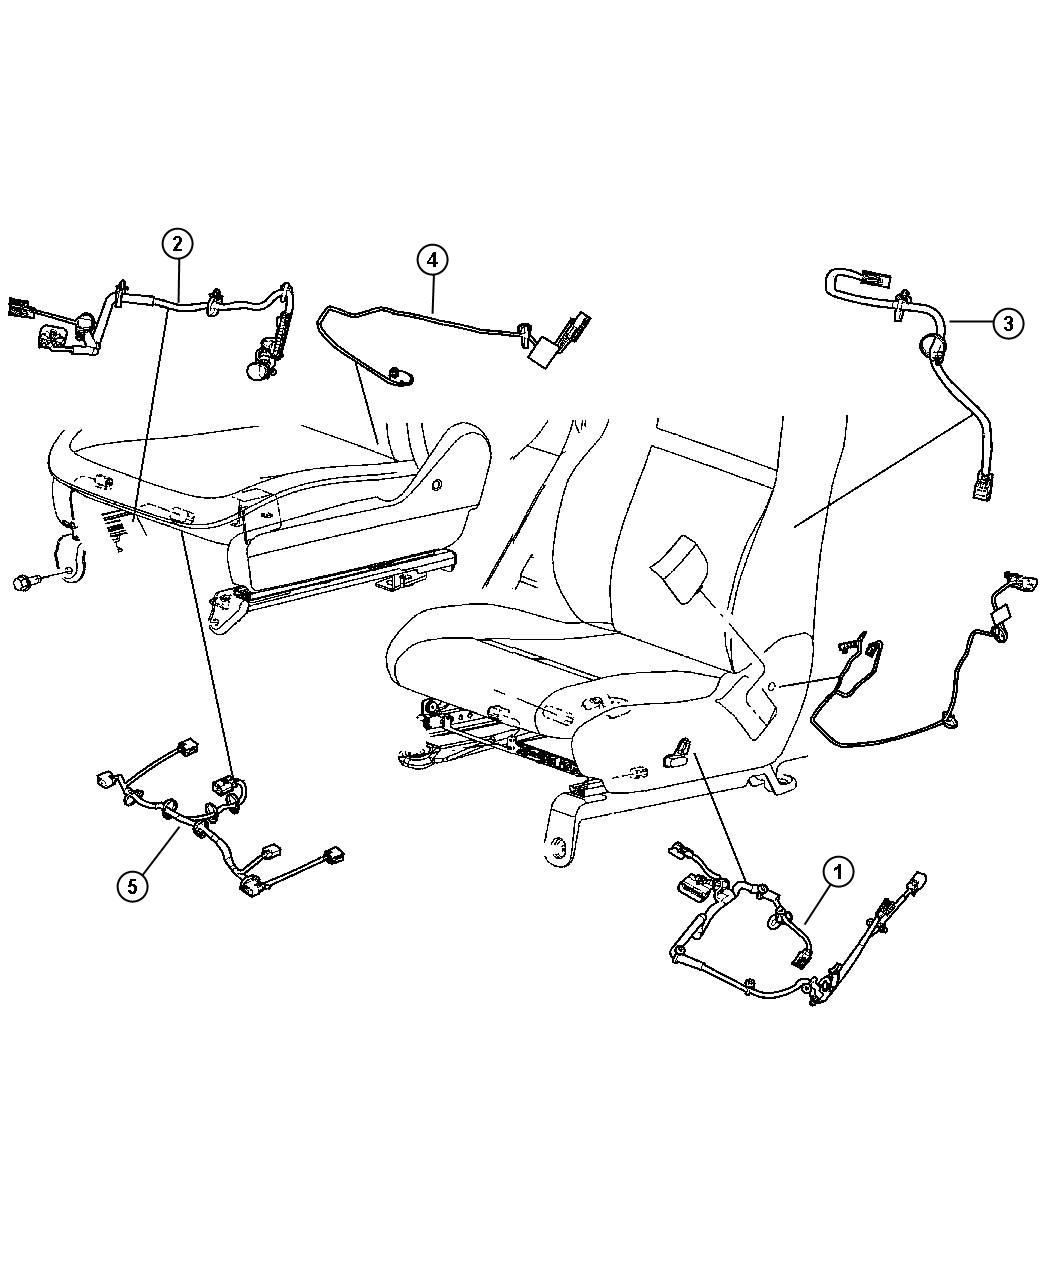 2005 cadillac cts heated seat wiring diagram